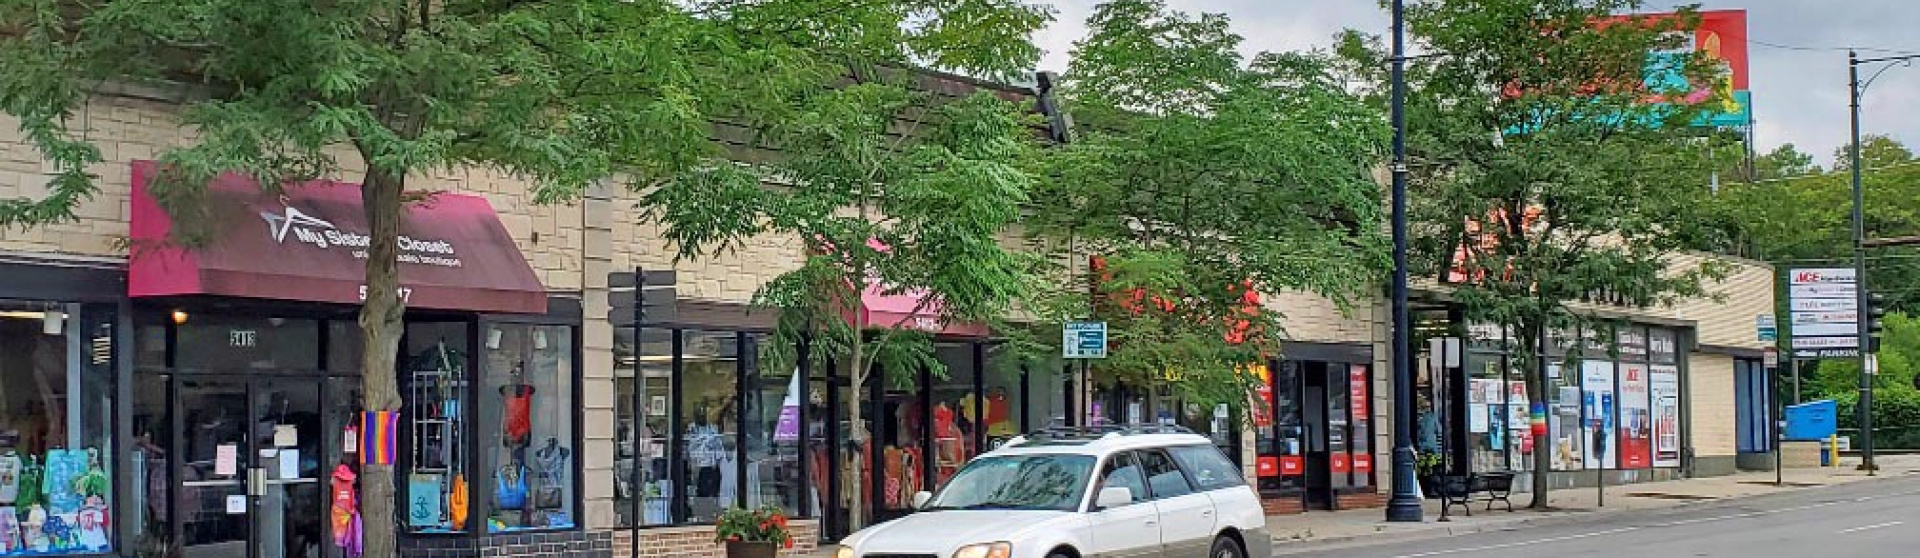 5409 W Devon Ave, Chicago, IL, ,Mixed-Use Building,Restaurant For Lease,5409 W Devon Ave, Chicago, IL,1327